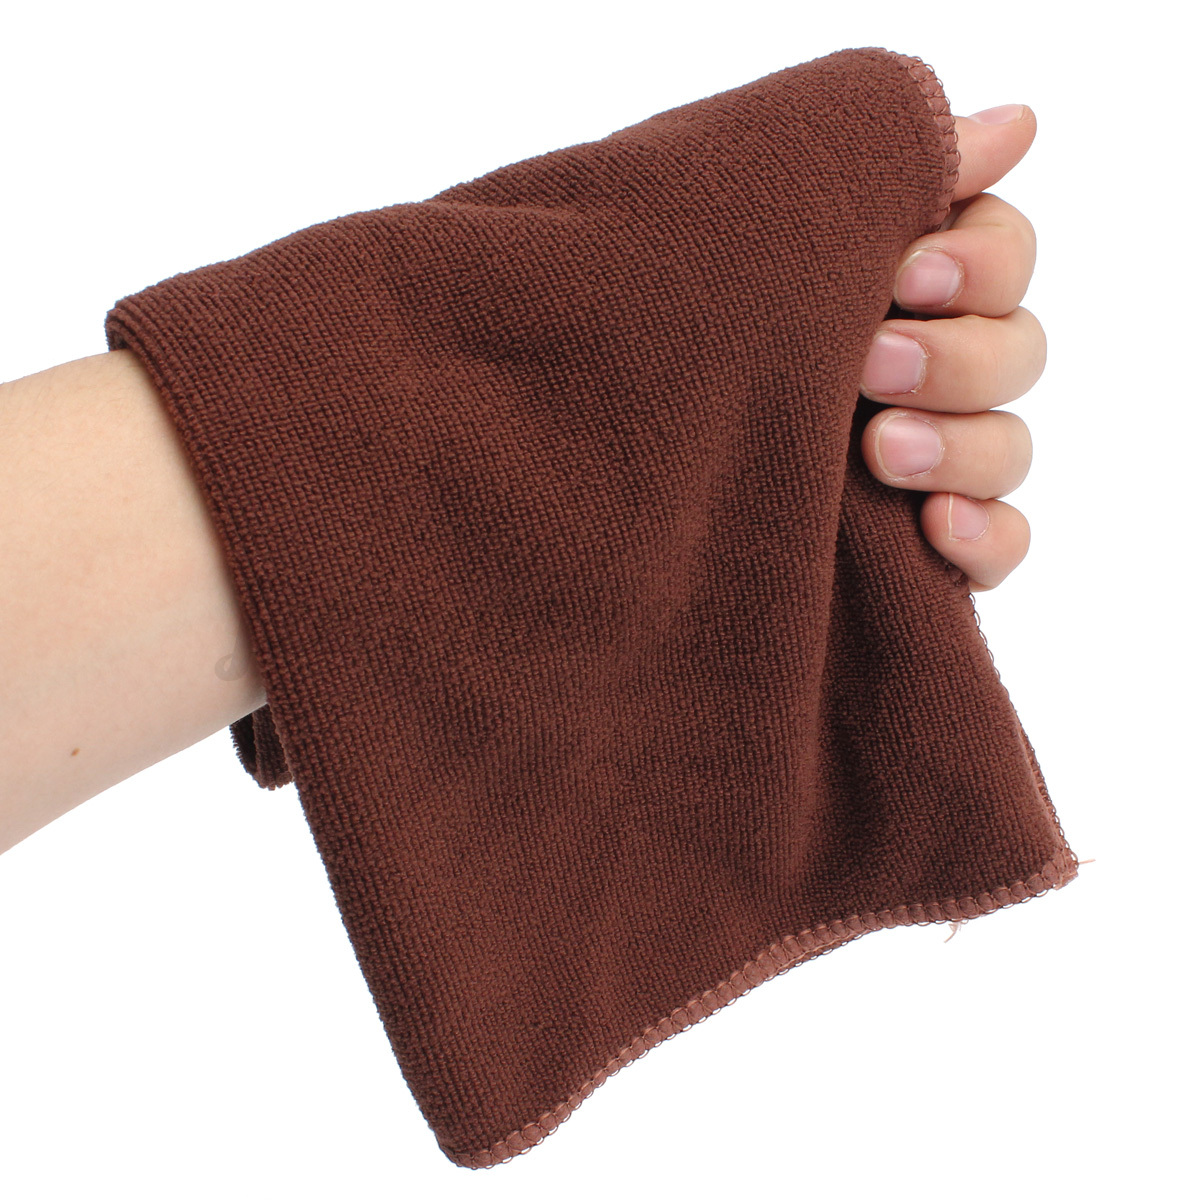 Best Quick Dry Towel For Gym: Microfibre Soft Towels Absorbent Quick Dry Sports Travel